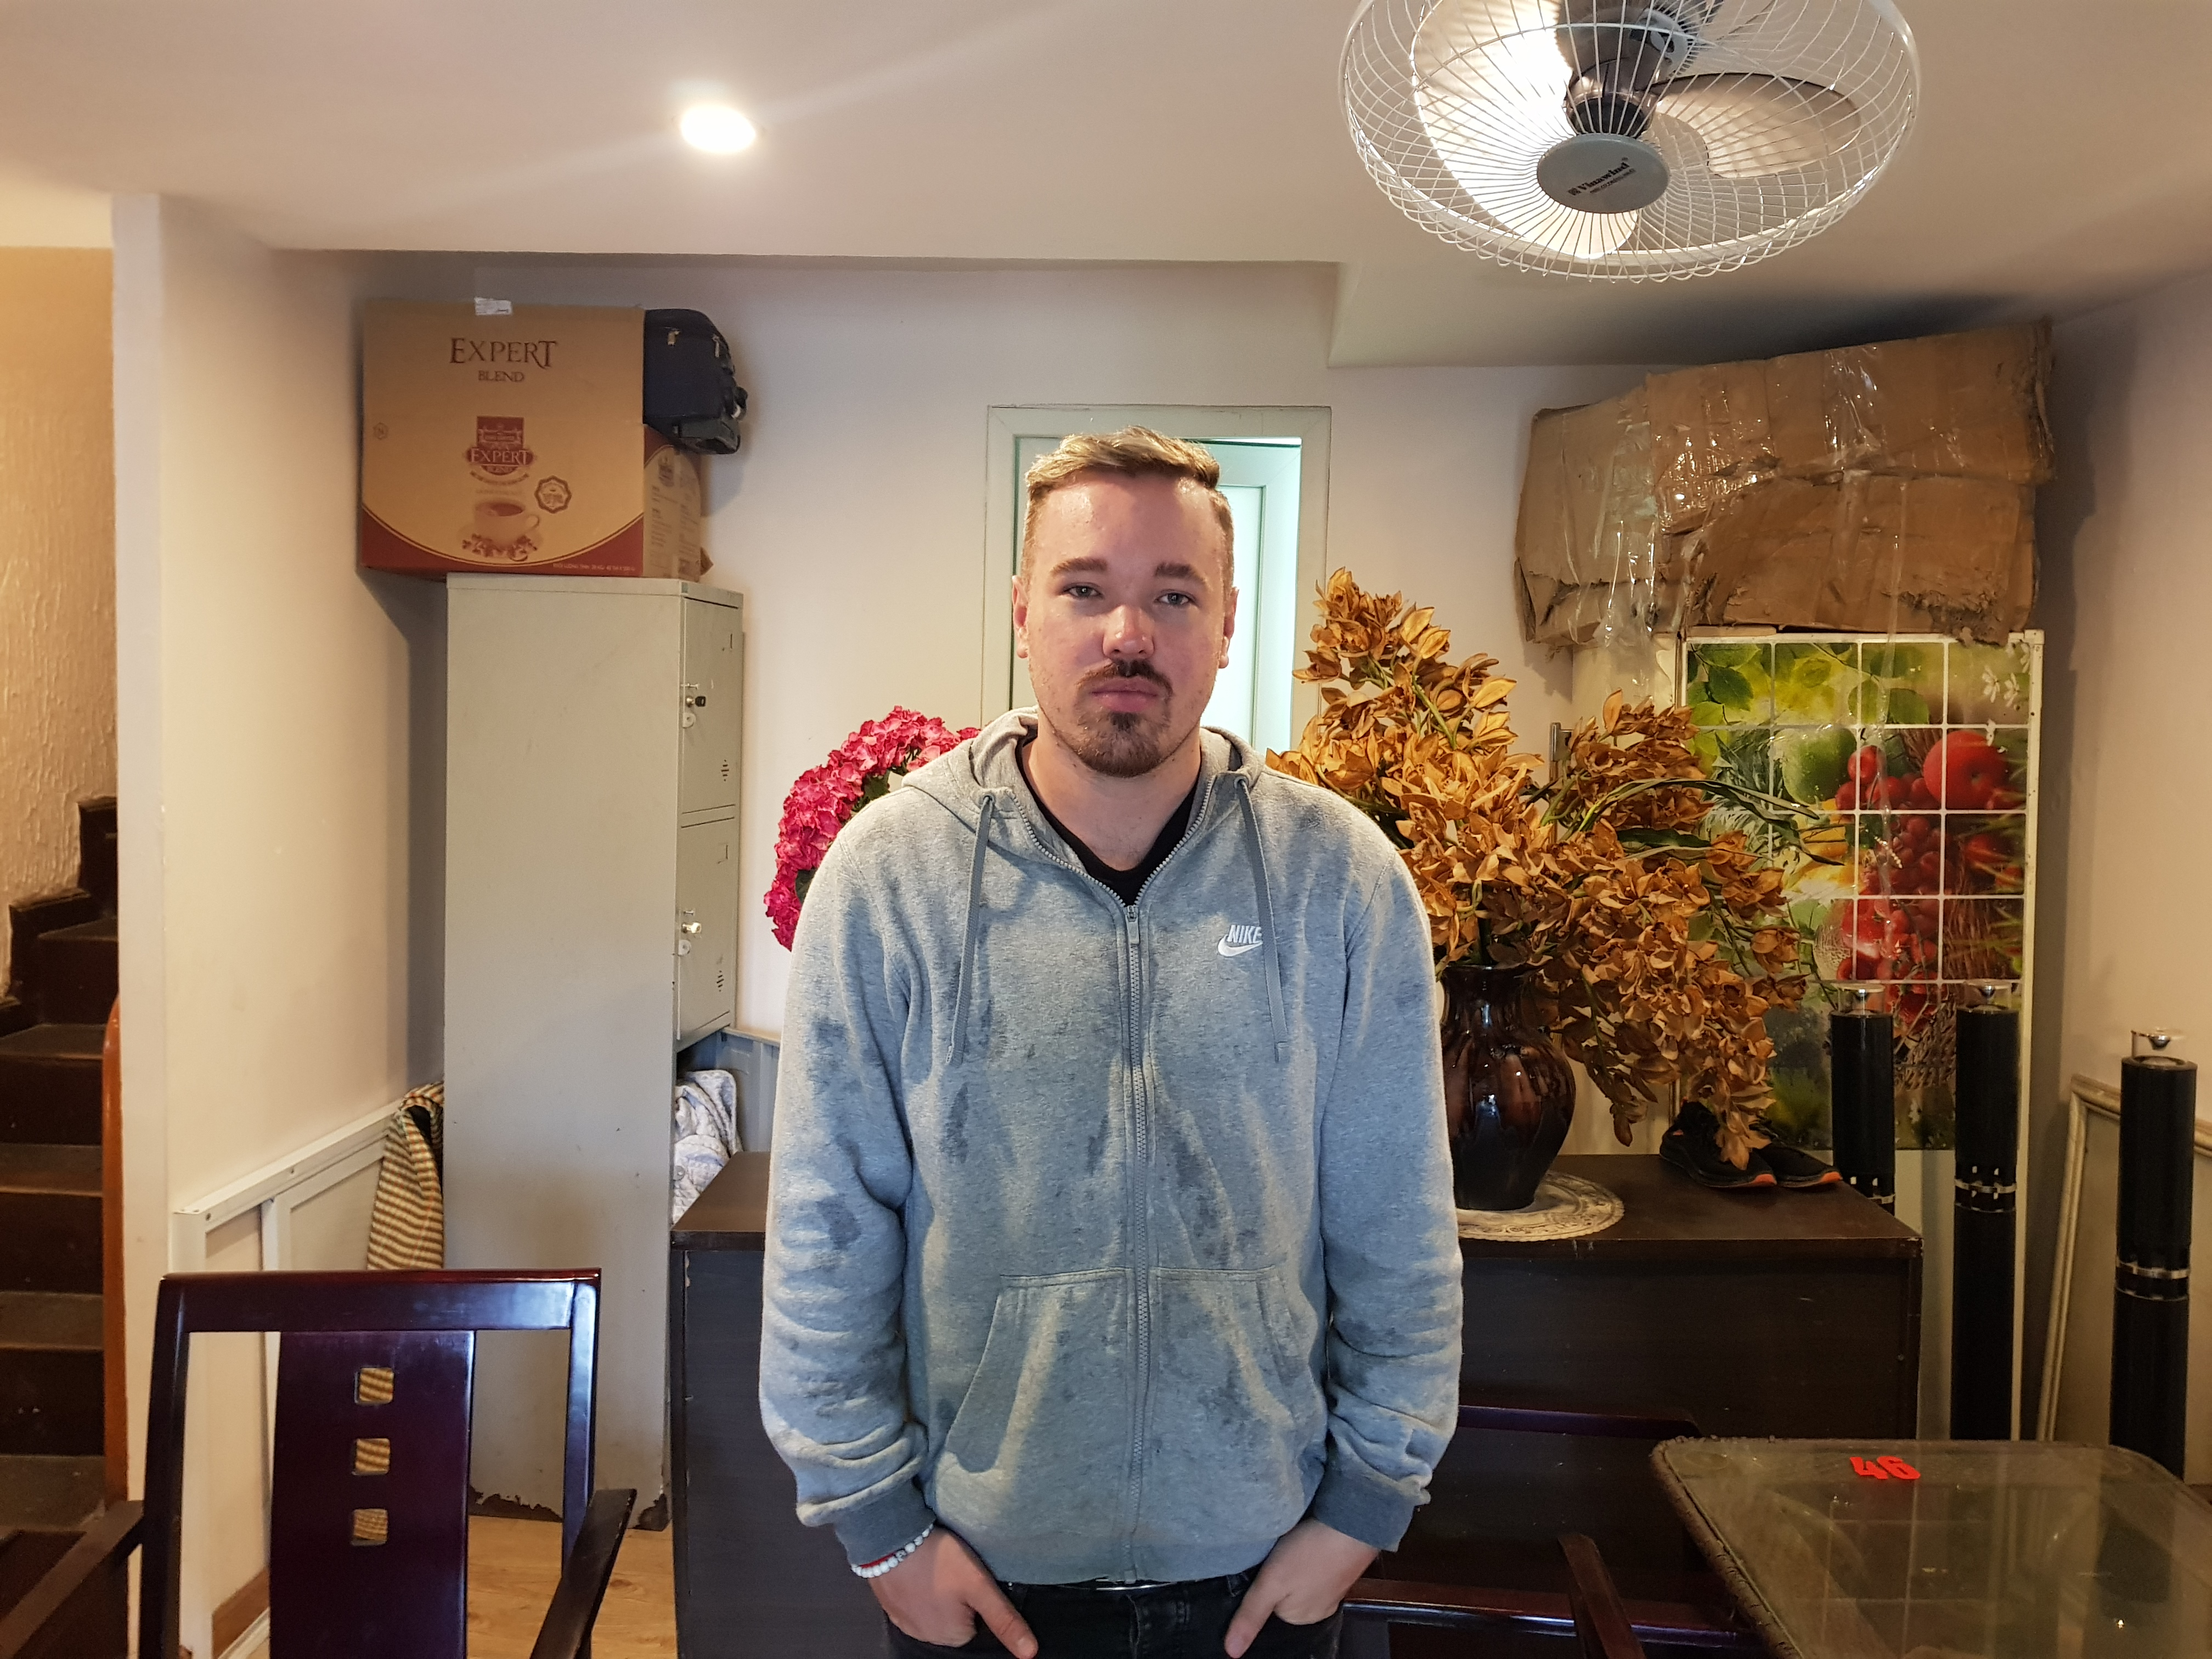 British Richard Bradshaw-Booth founder of the Hanoi Mental Health Support Group, is seen in this provided photo.